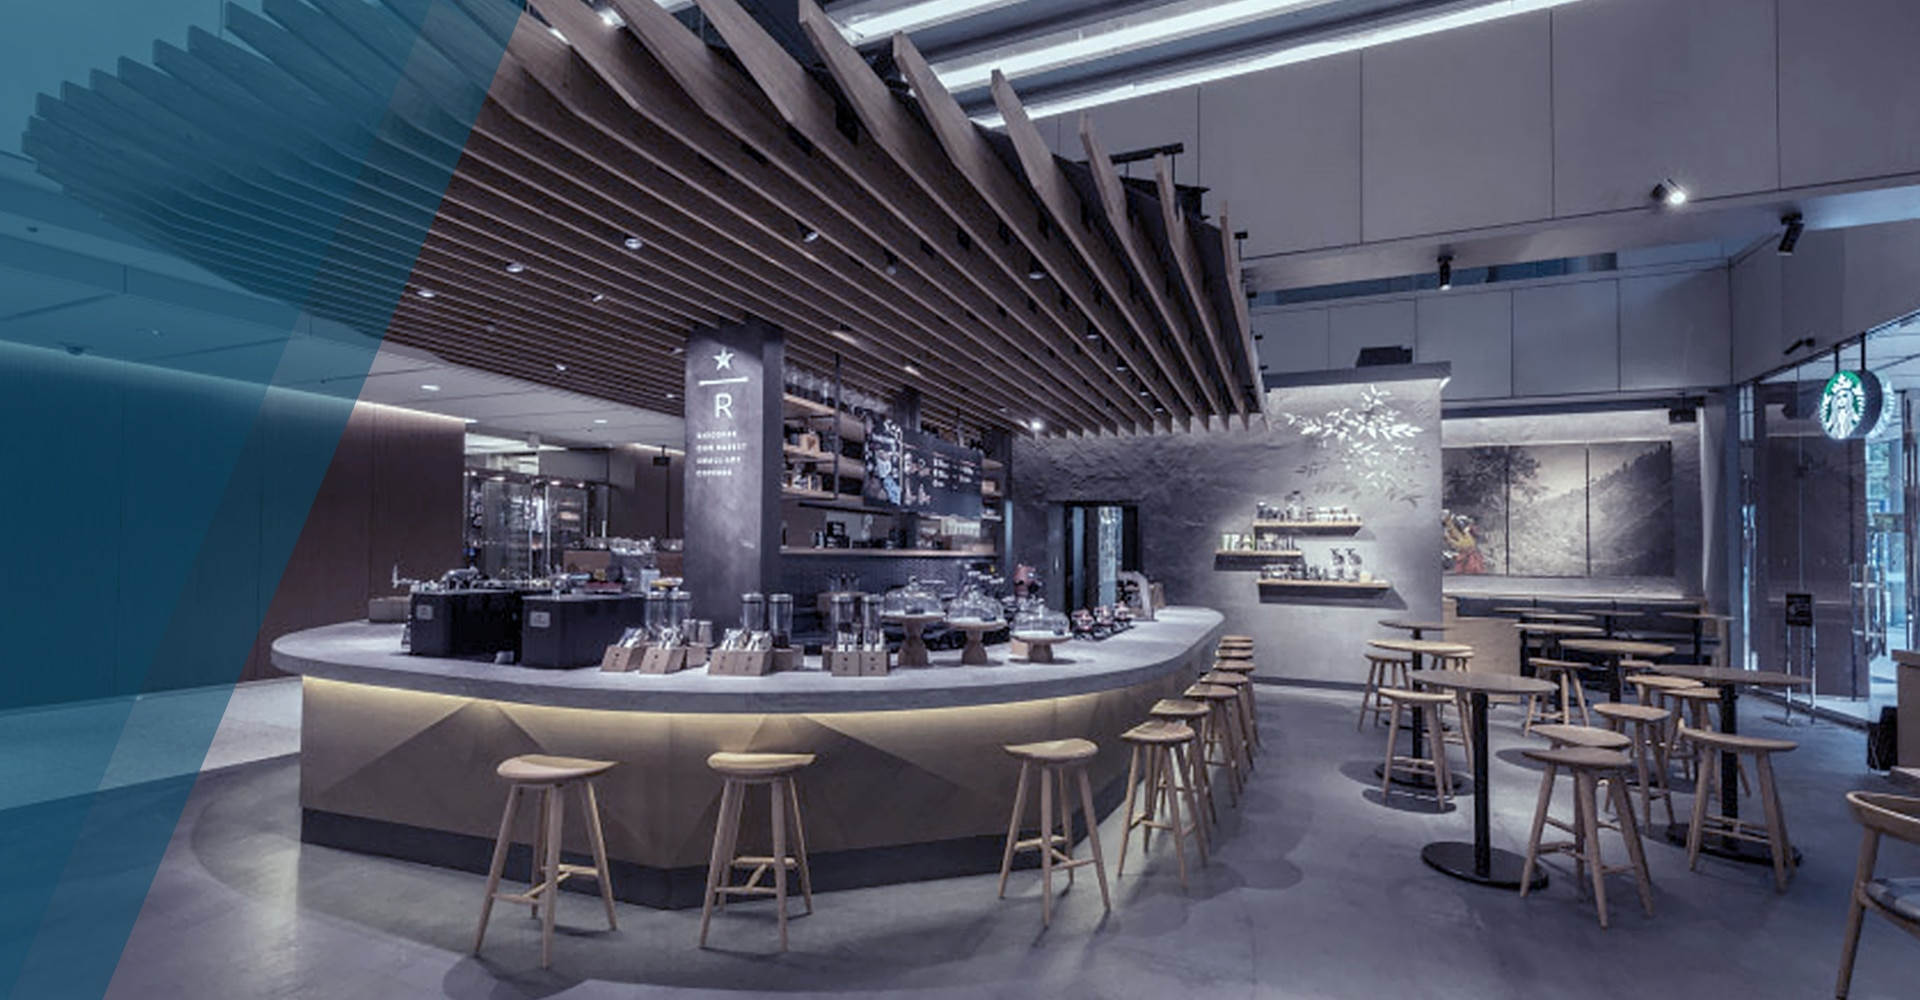 Starbucks Japan uses BIM and VR in design